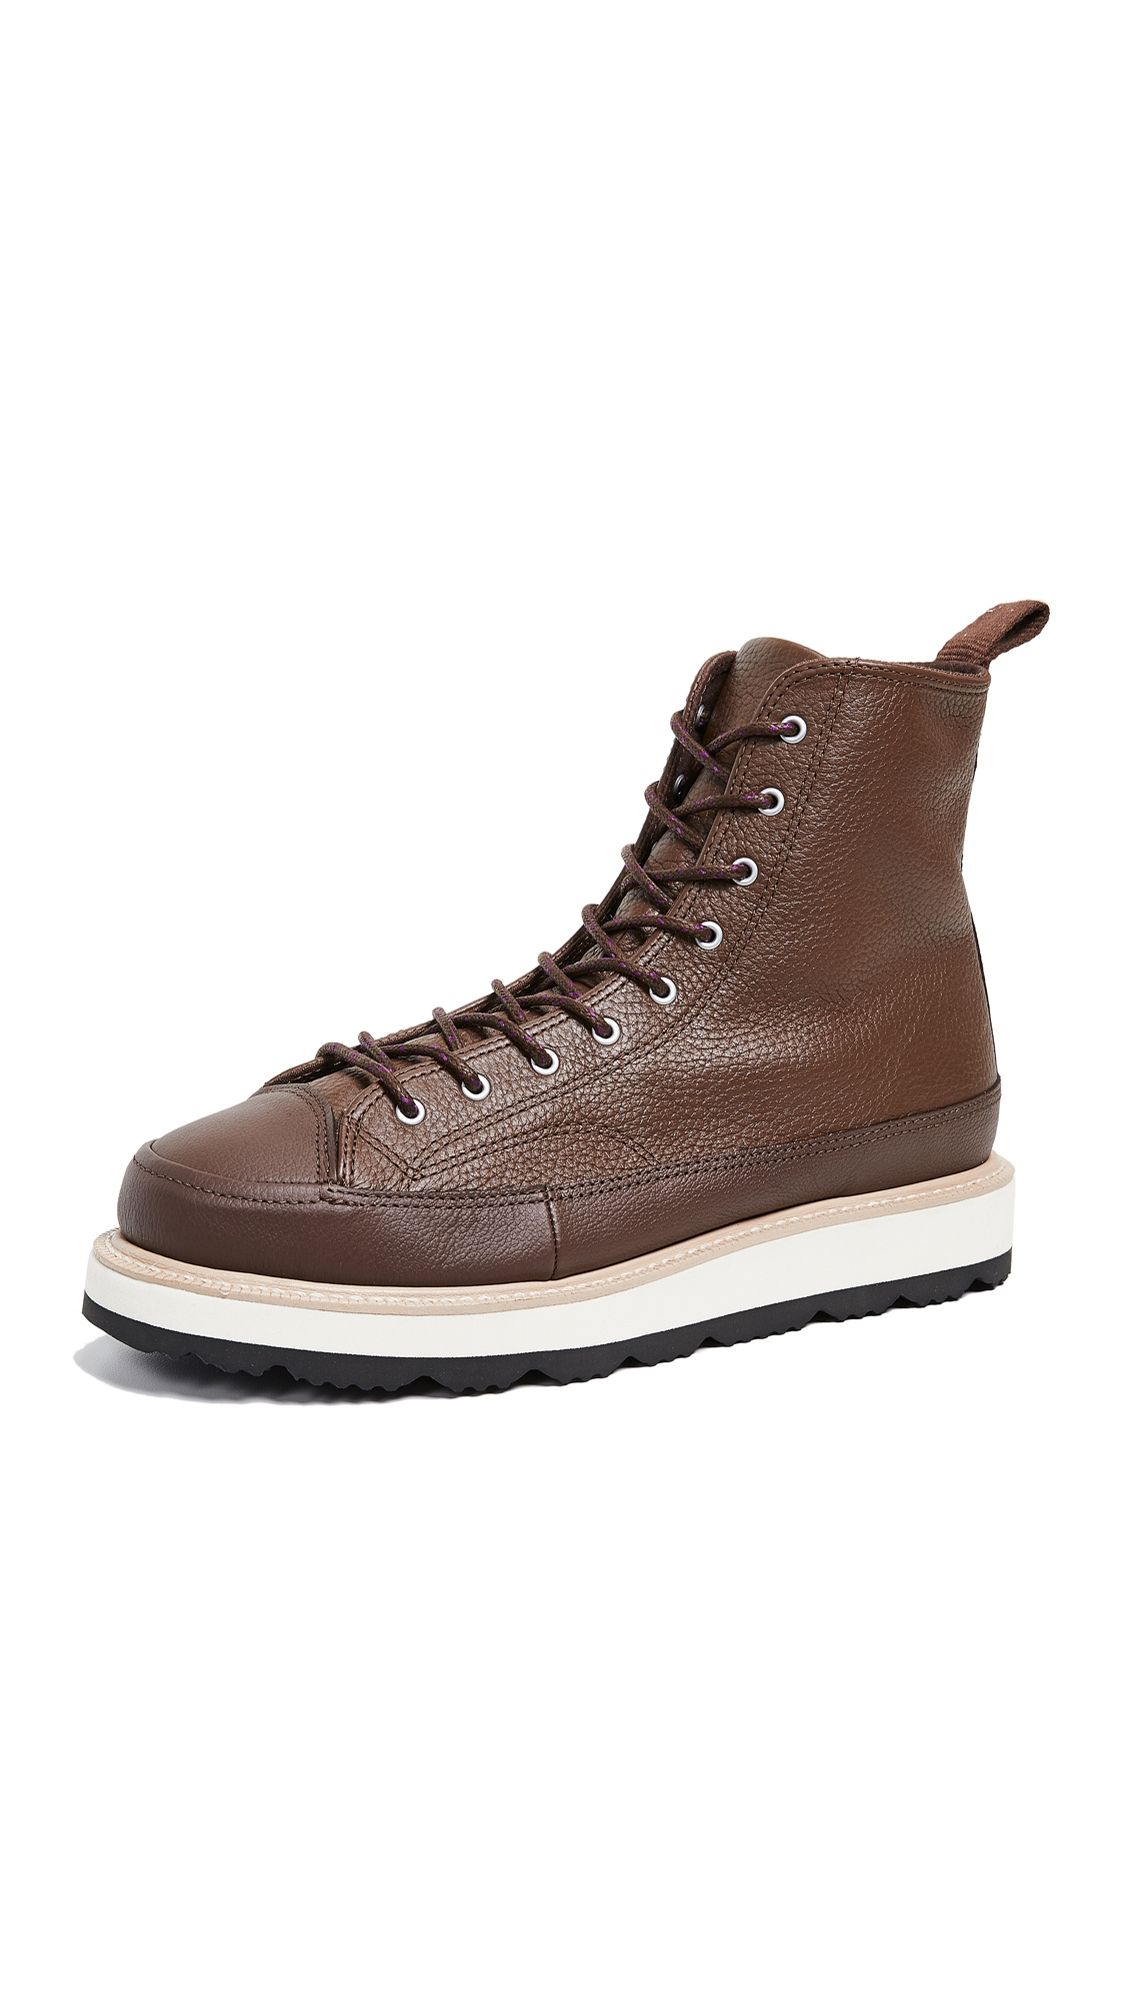 34c29fbc7b077b CONVERSE CHUCK TAYLOR CRAFTED BOOTS.  converse  shoes